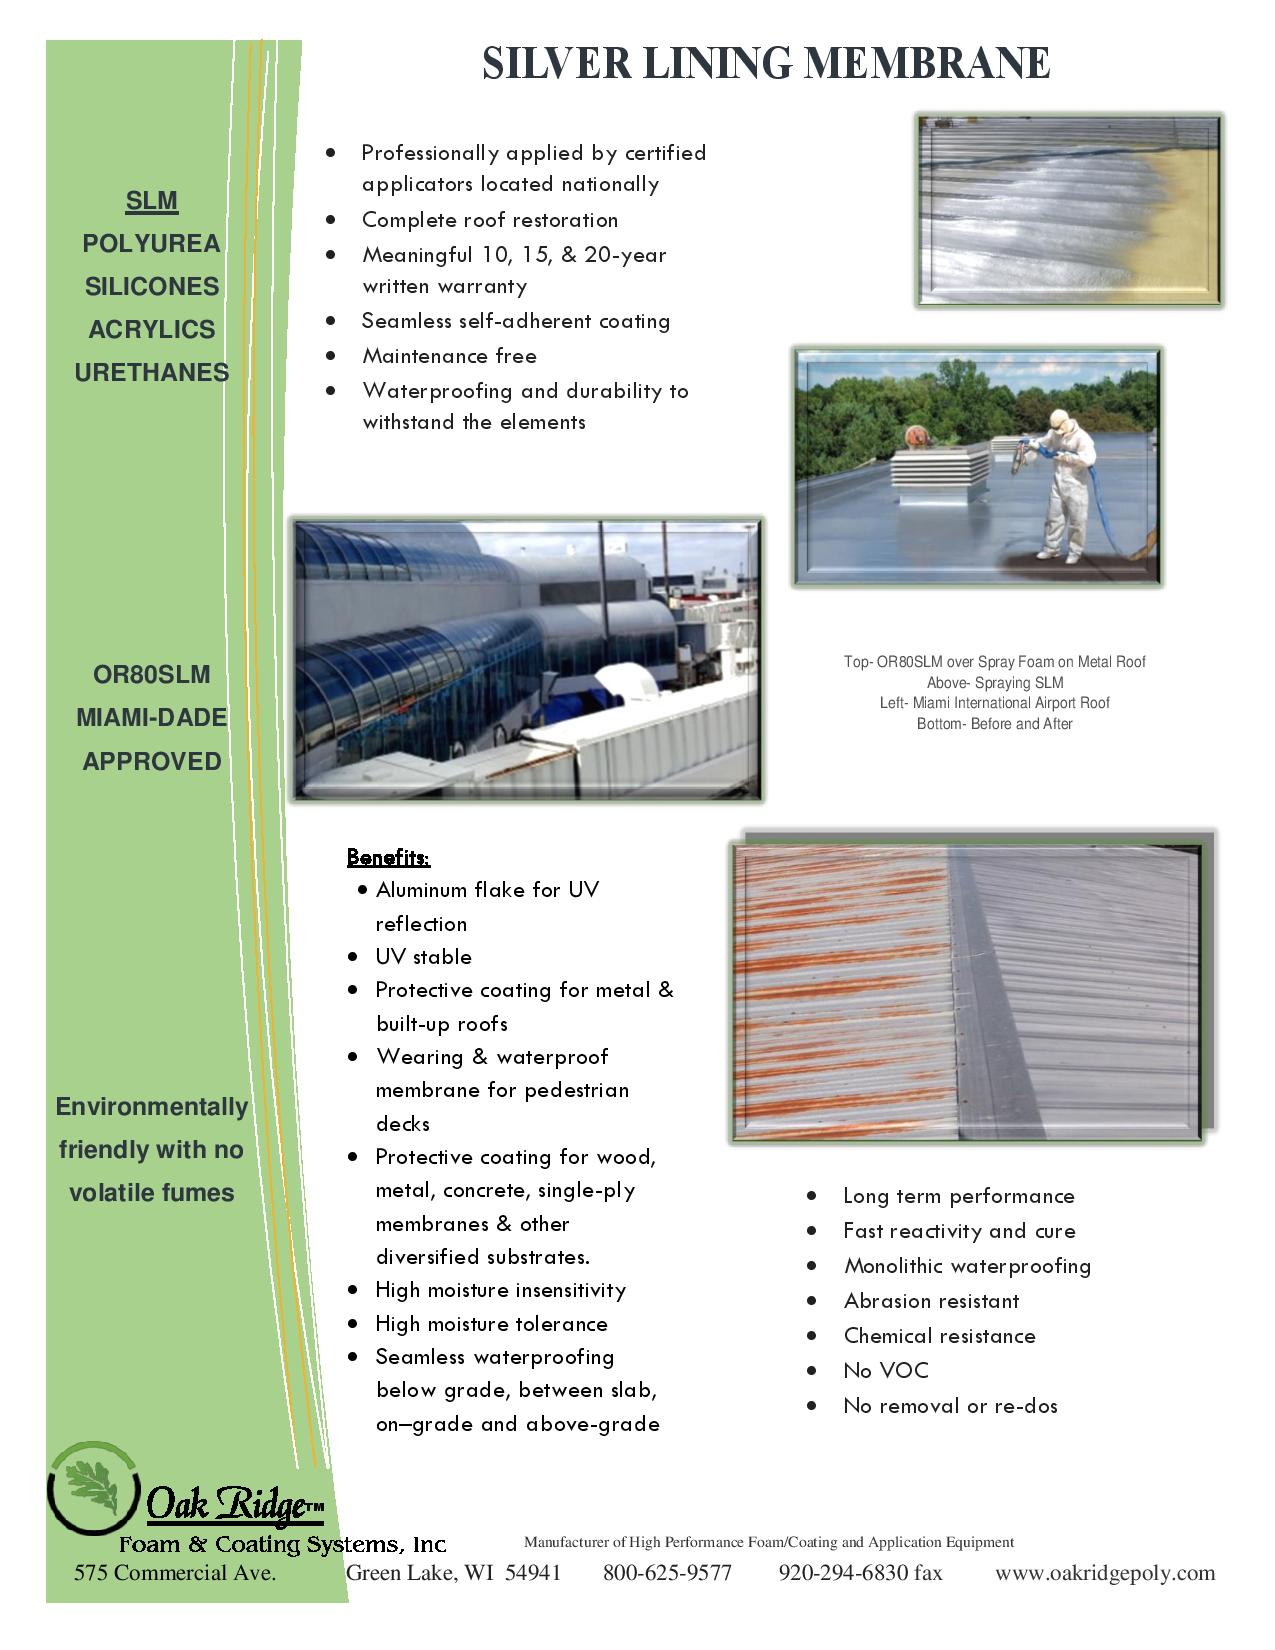 Miami Dade Approved Commercial Roof Coating Oak Ridge